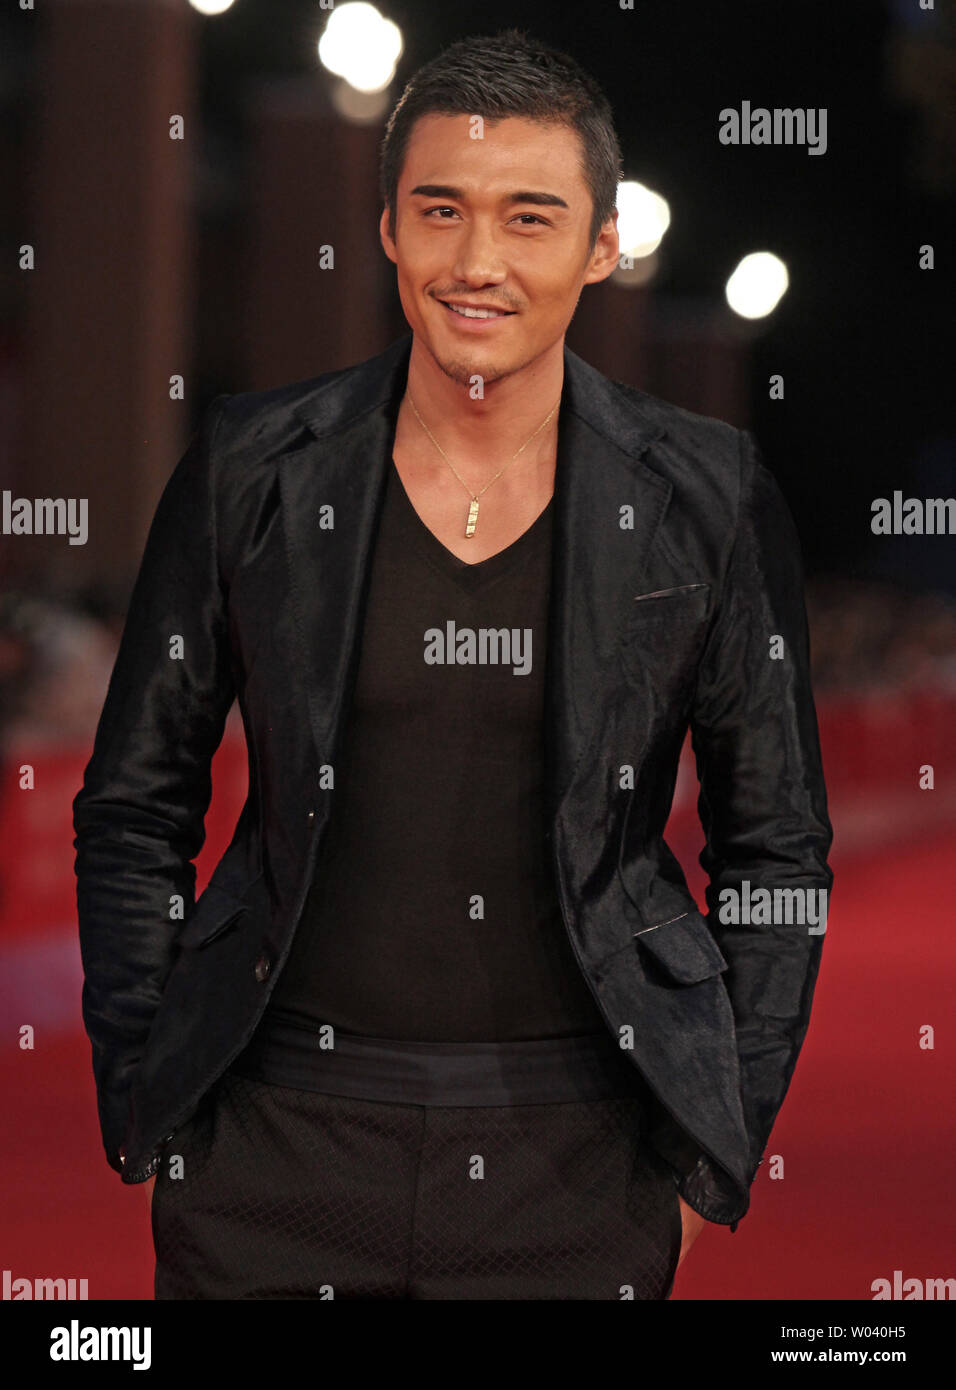 Hu Bing arrives on the red carpet before the screening of a digitally restored version of the 1960 classic film 'La Dolce Vita' during the 5th Rome International Film Festival in Rome on October 30, 2010.   UPI/David Silpa - Stock Image